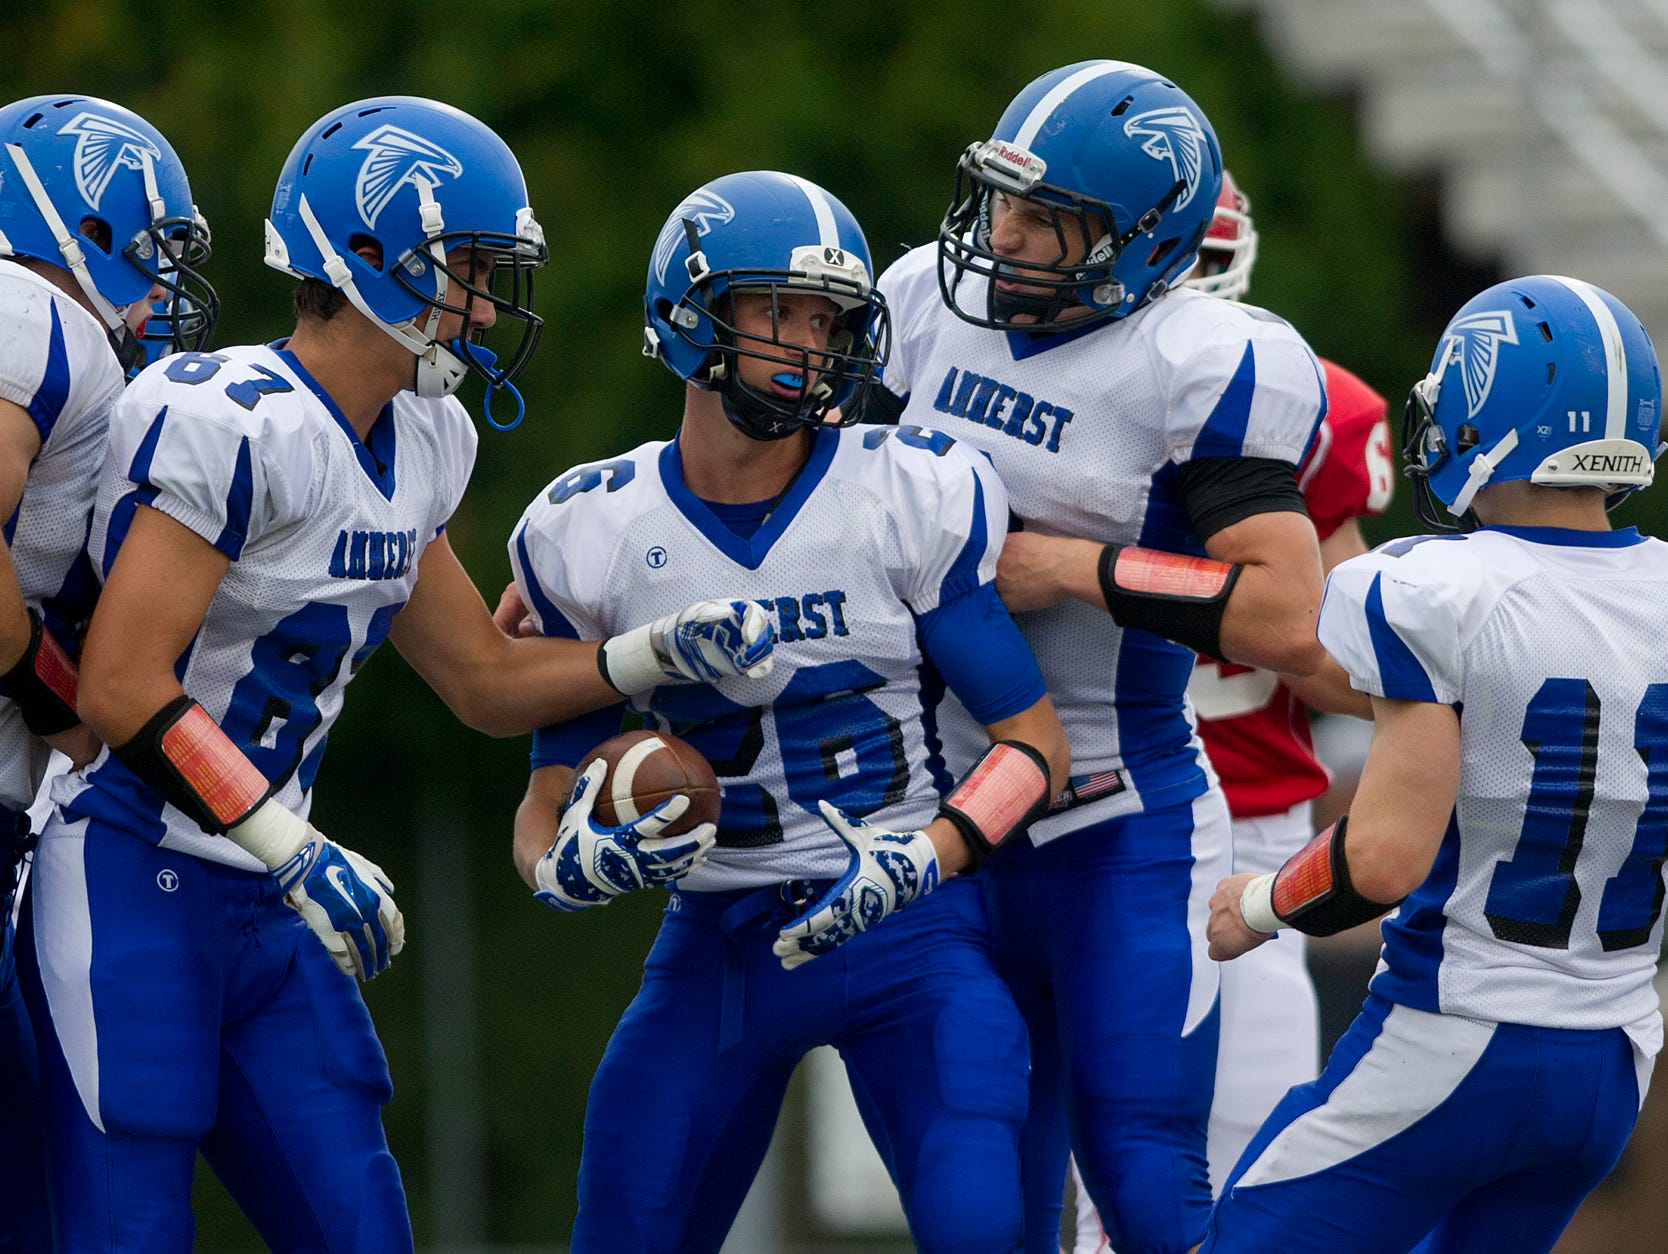 Amherst's Mitchell Glodowski, center, celebrates his touchdown in the first quarter with his teammates during the Central Wisconsin Conference football game against Pacelli at Goerke Field in Stevens Point on Friday, Sept. 18, 2015.